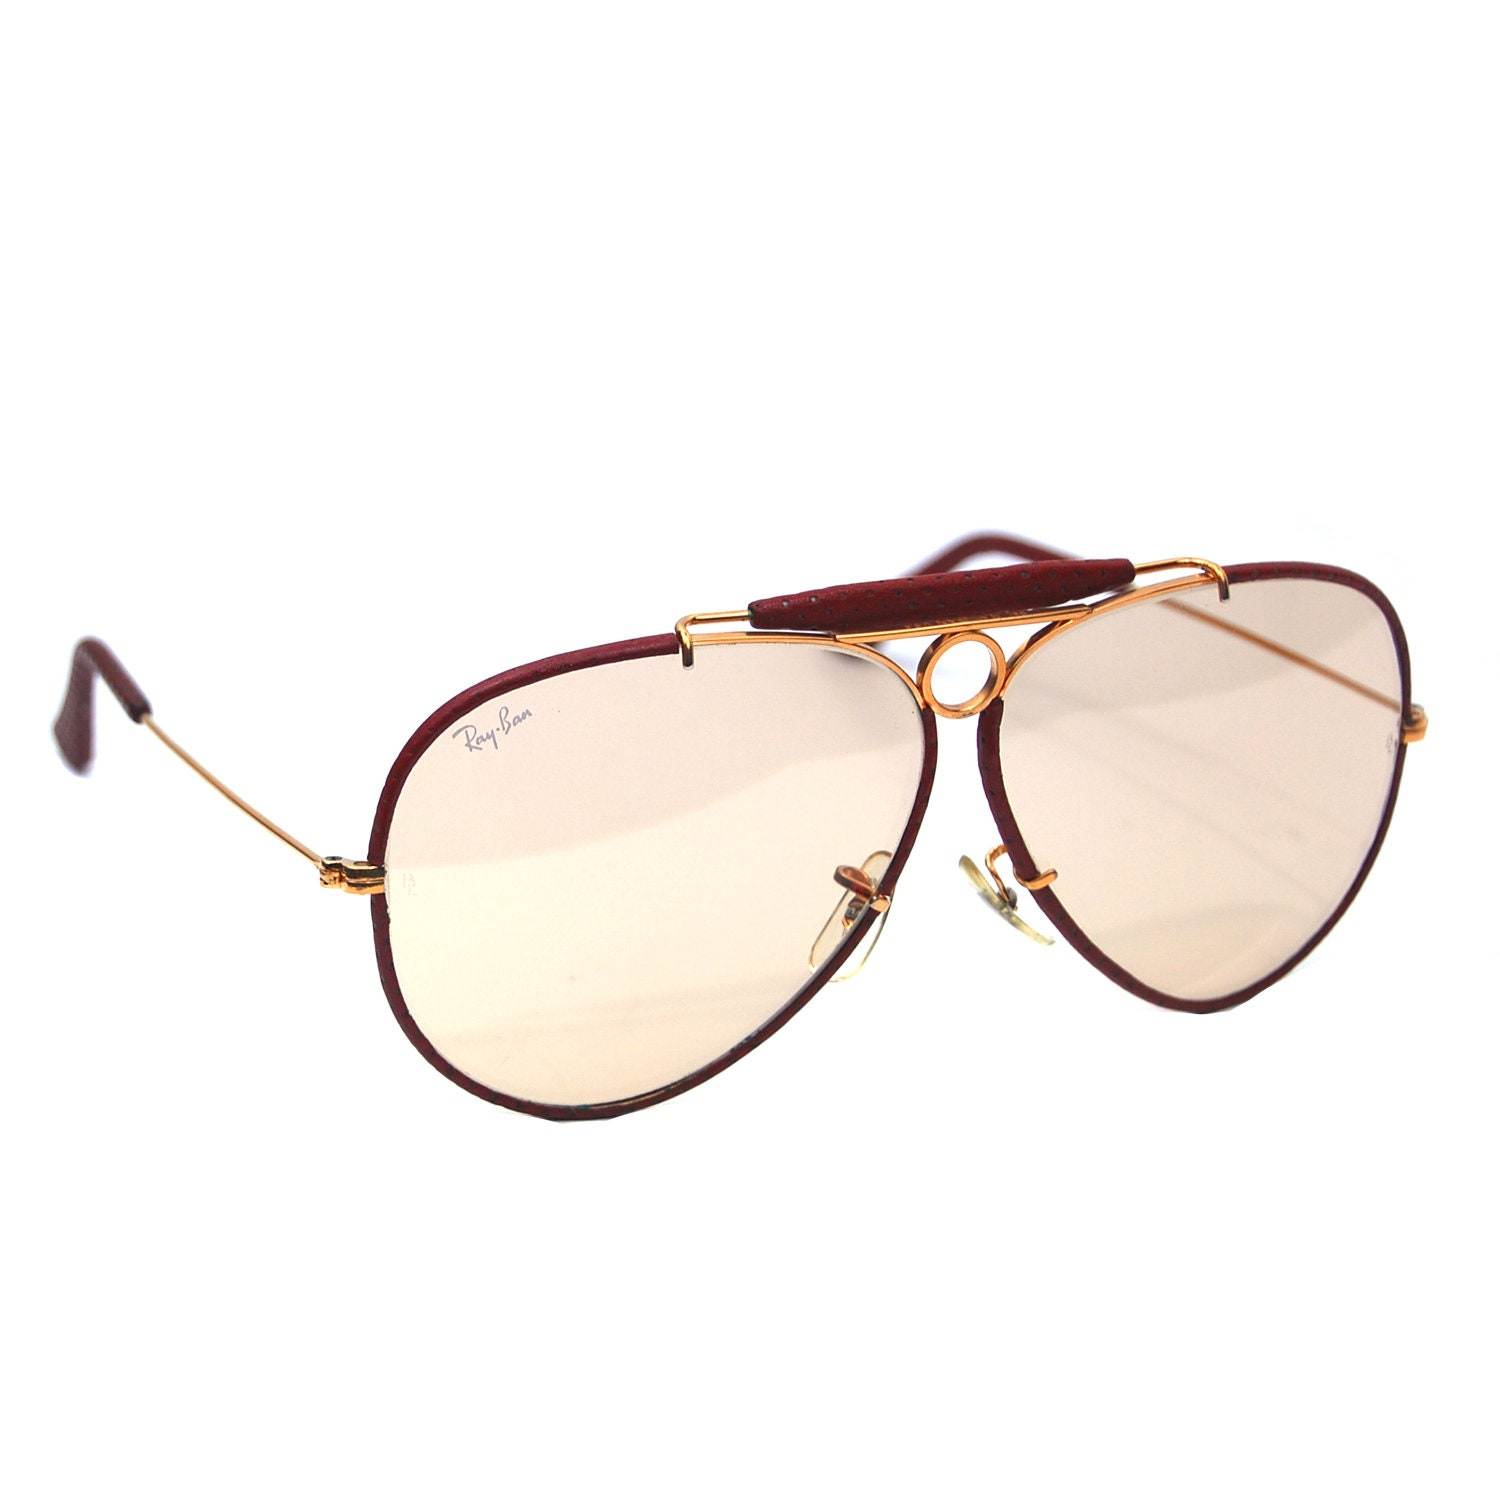 a0daa1bd27f Ray Ban Leathers Bausch   Lomb Price